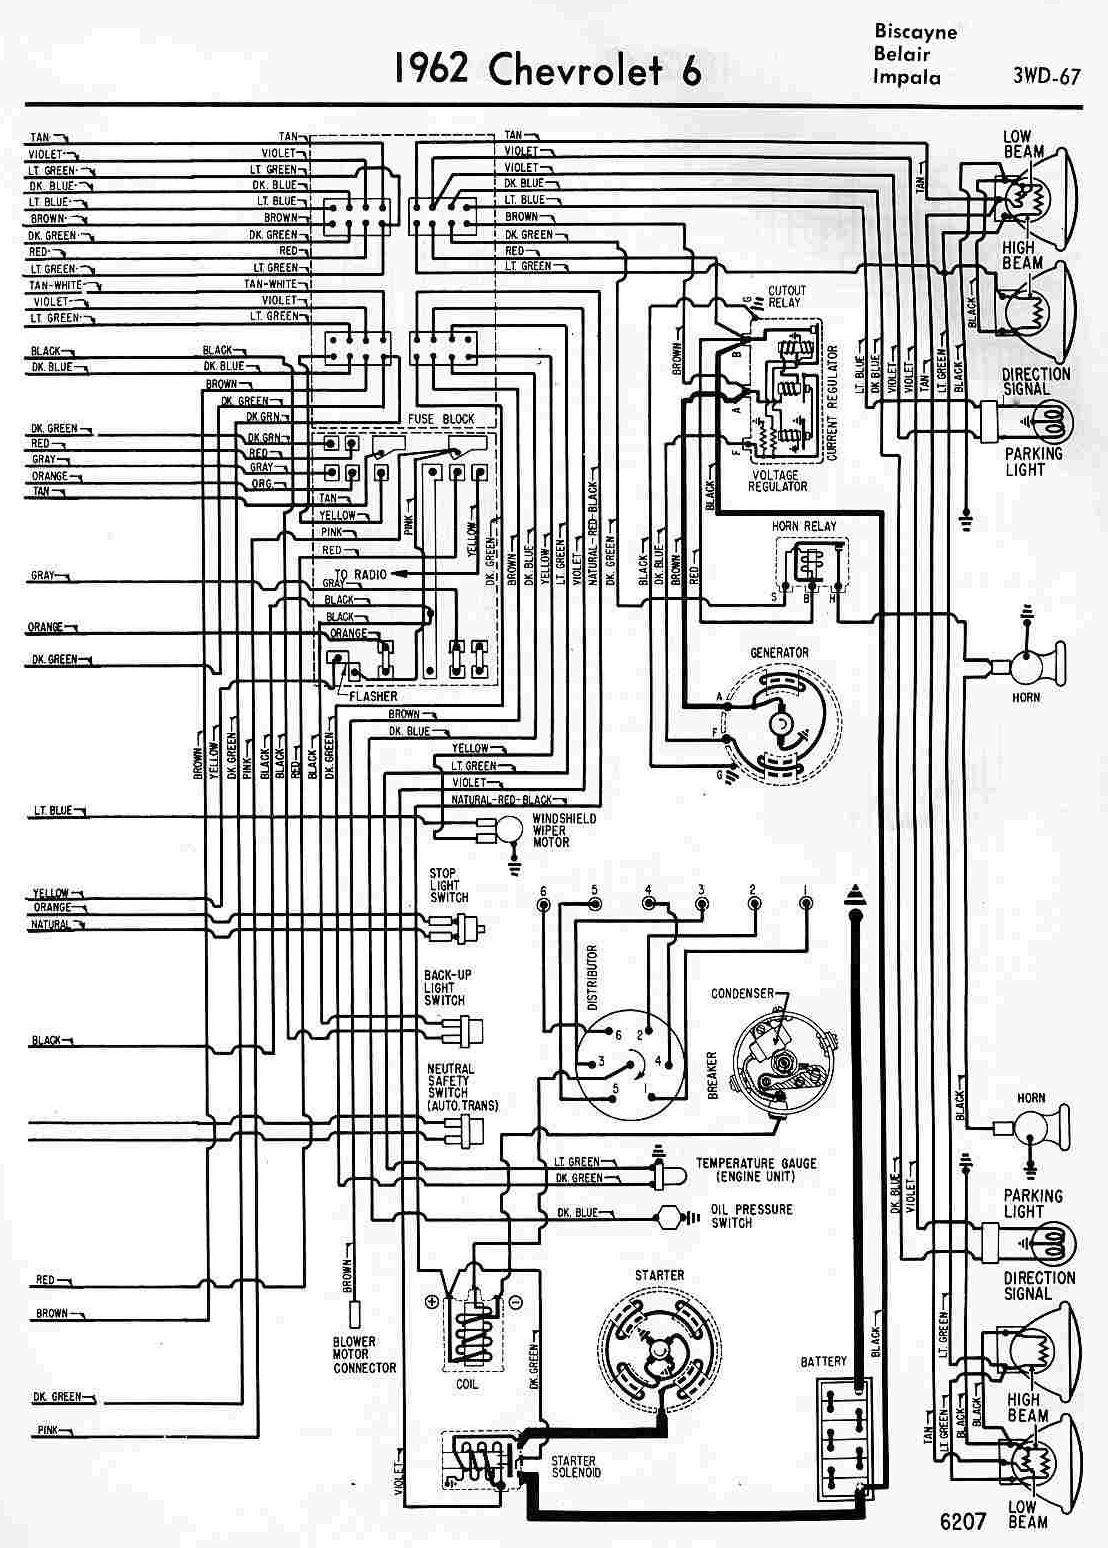 66 gm tail light wiring diagram free download wiring diagram gm dash wiring diagrams 66 impala ac wiring diagram schematics wiring diagrams u2022 rh seniorlivinguniversity co